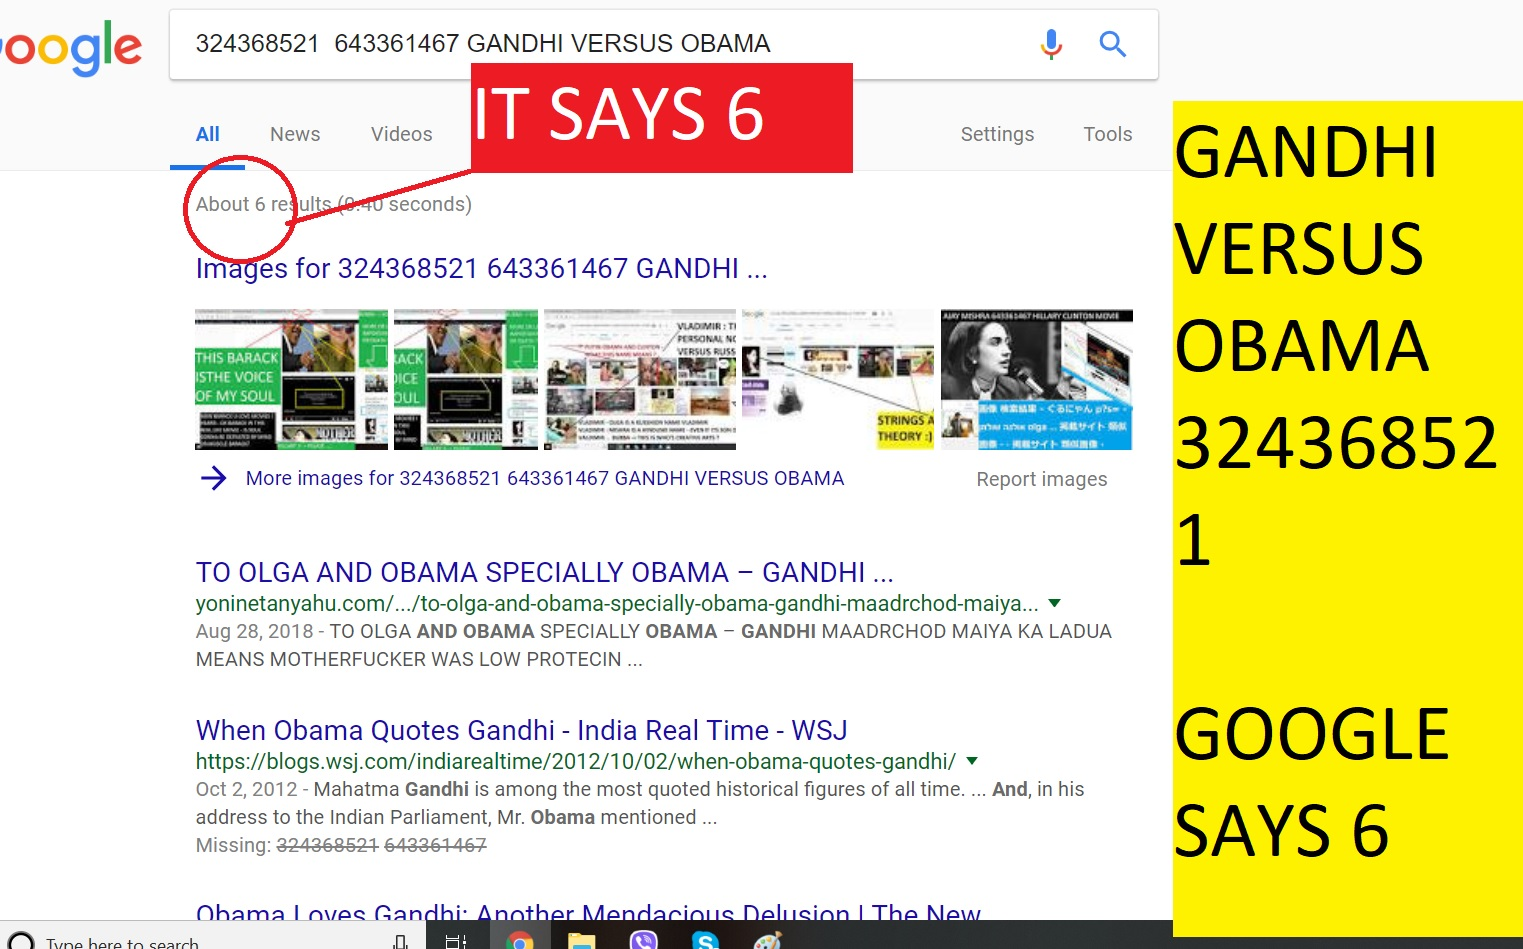 GANDHI VERSUS OBAMA GOOGLE SAYS 6 THANKS GOOGLE AND EVERYONE -